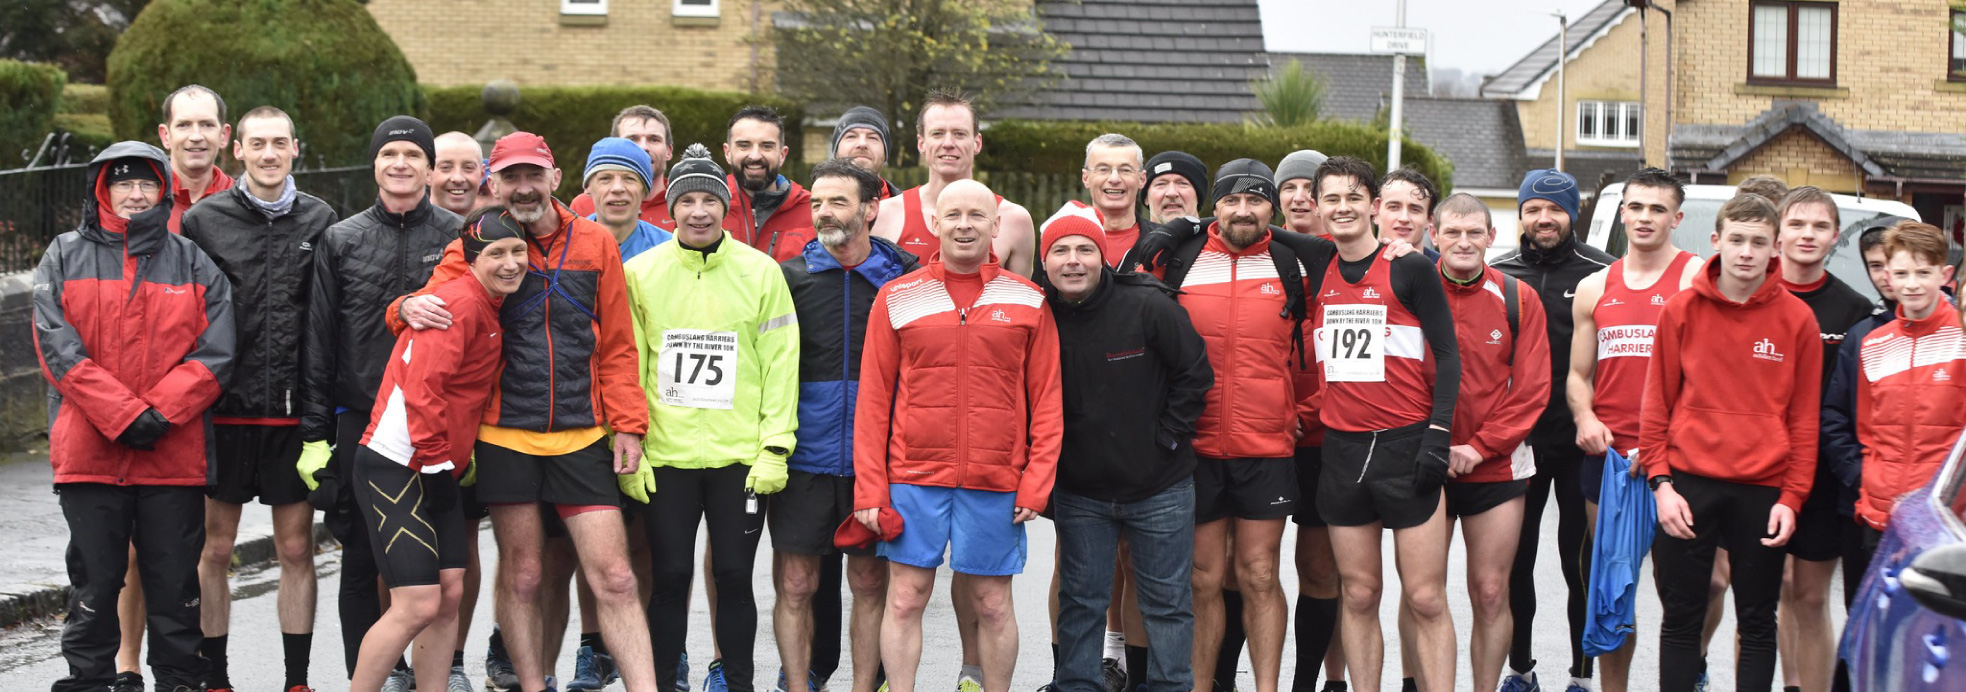 Members of Cambuslang Harriers at the club's Christmas handicap race